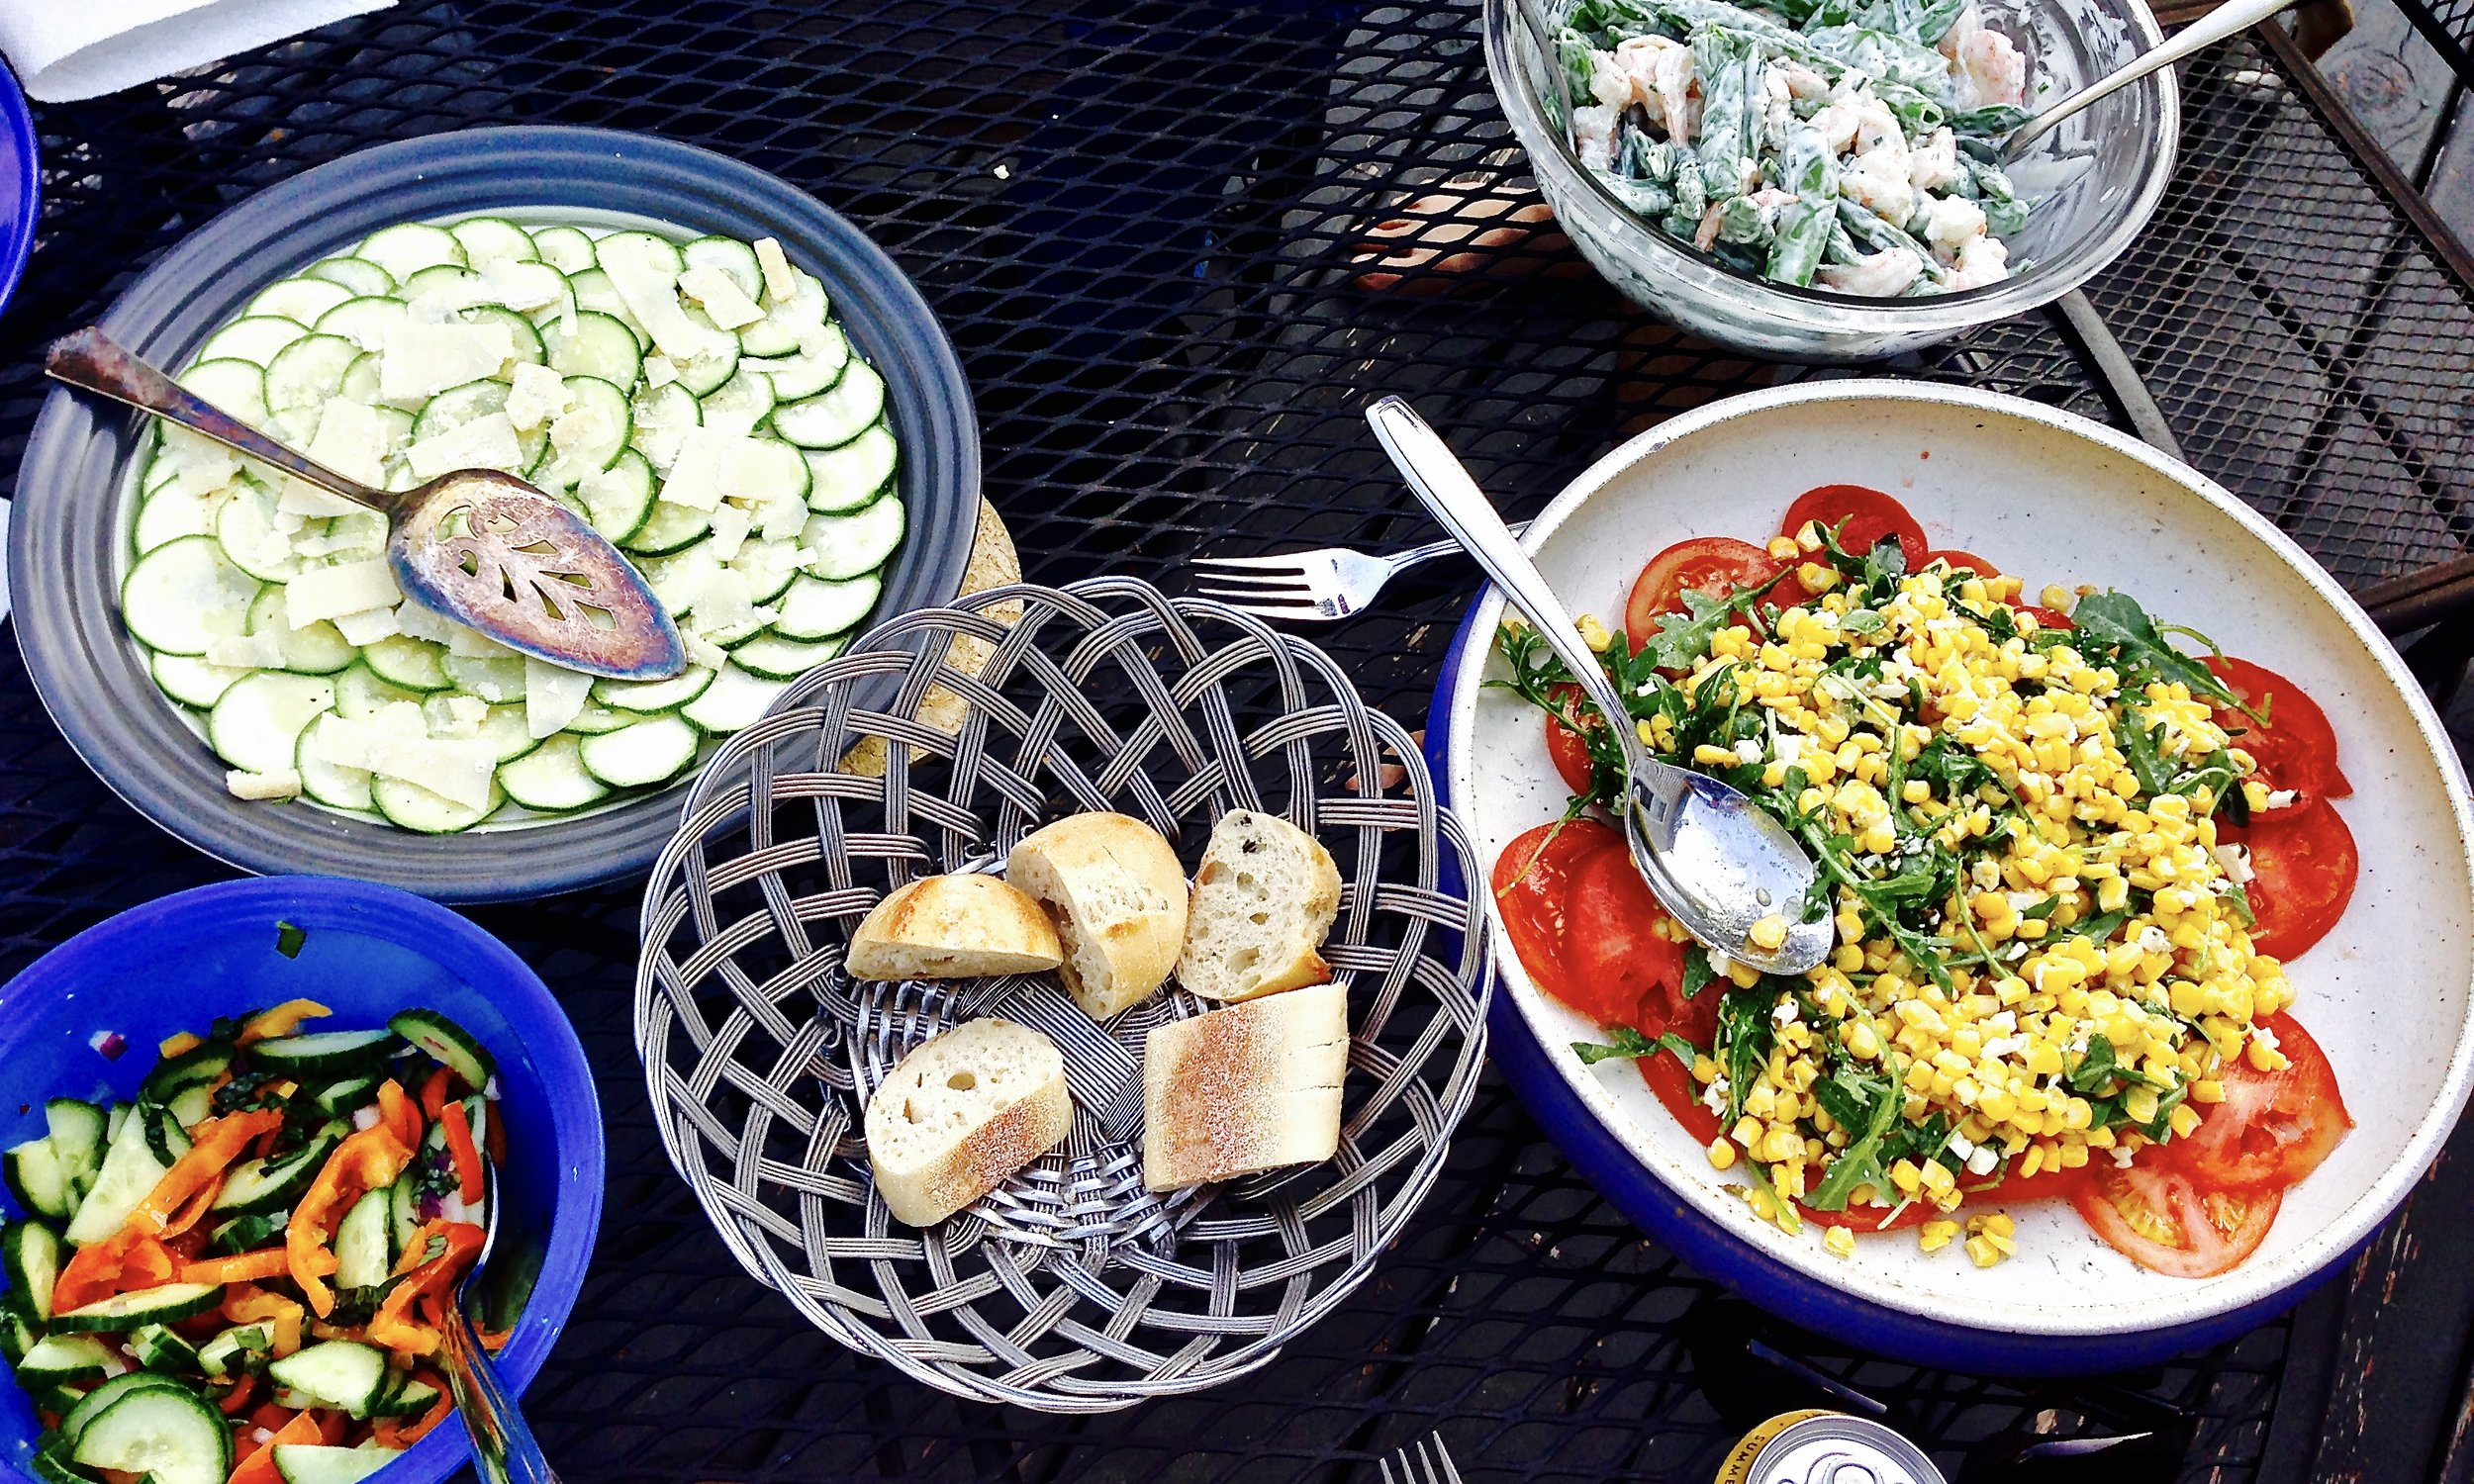 A summer smorgasbord of delicious salads, enjoyed with friends in Madison, WI